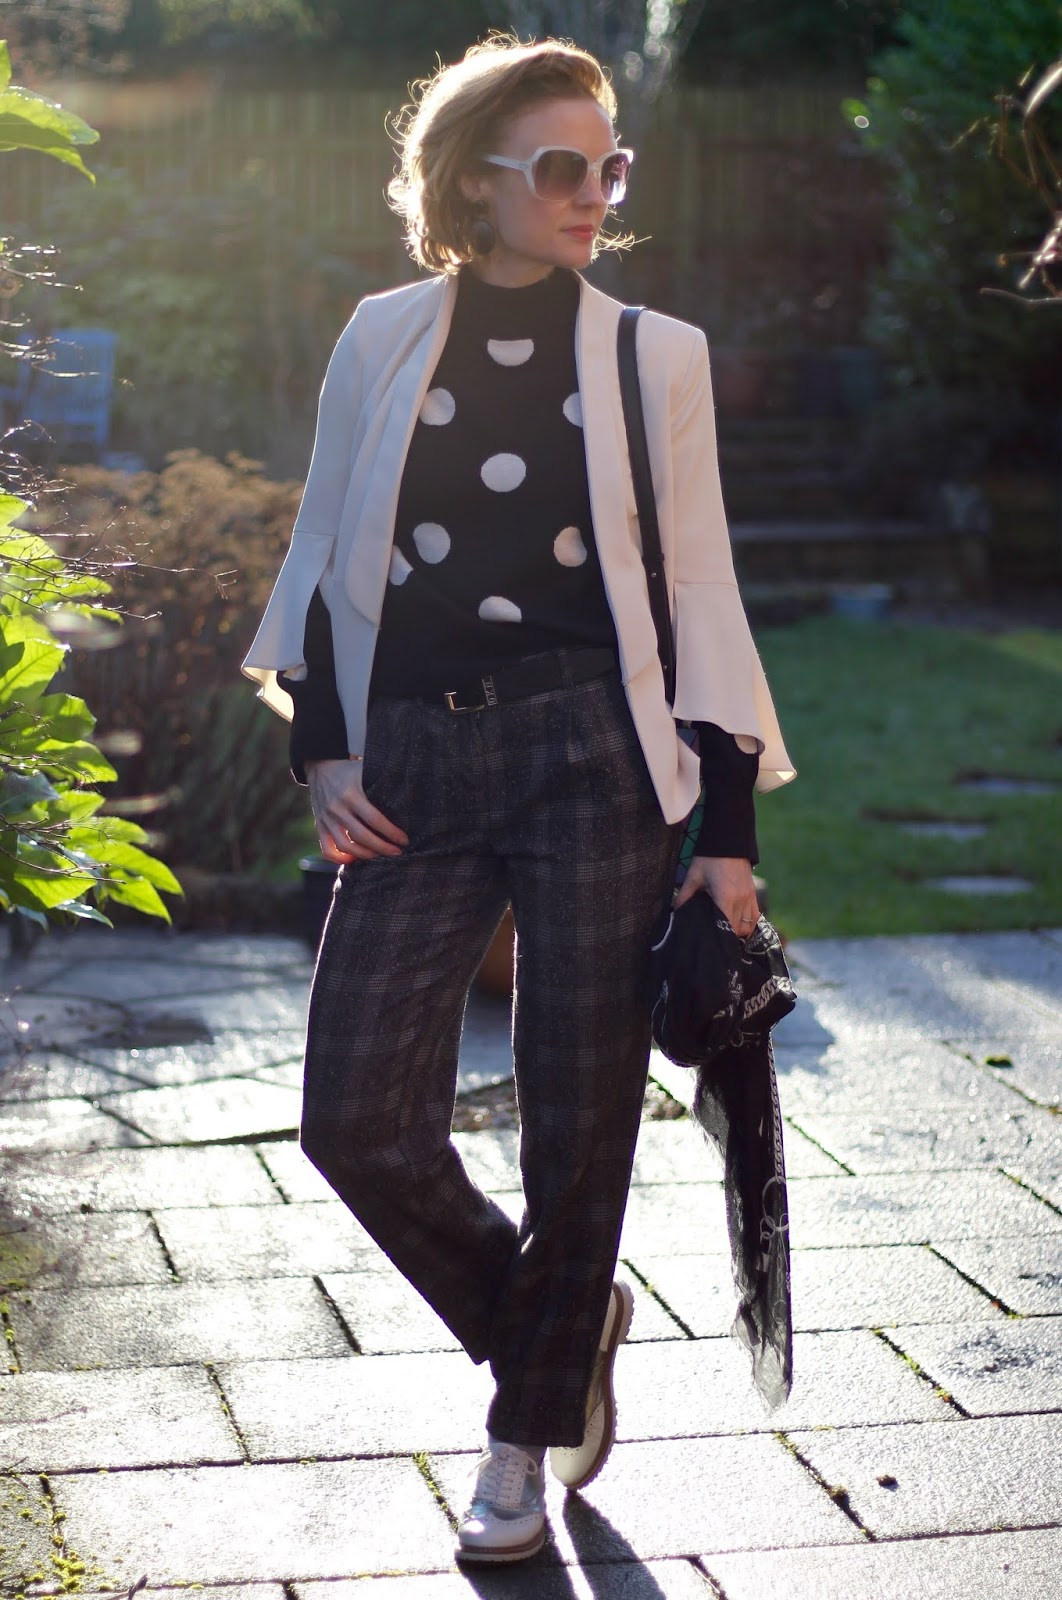 Winter Outfit | Checks and Spots | Layered style